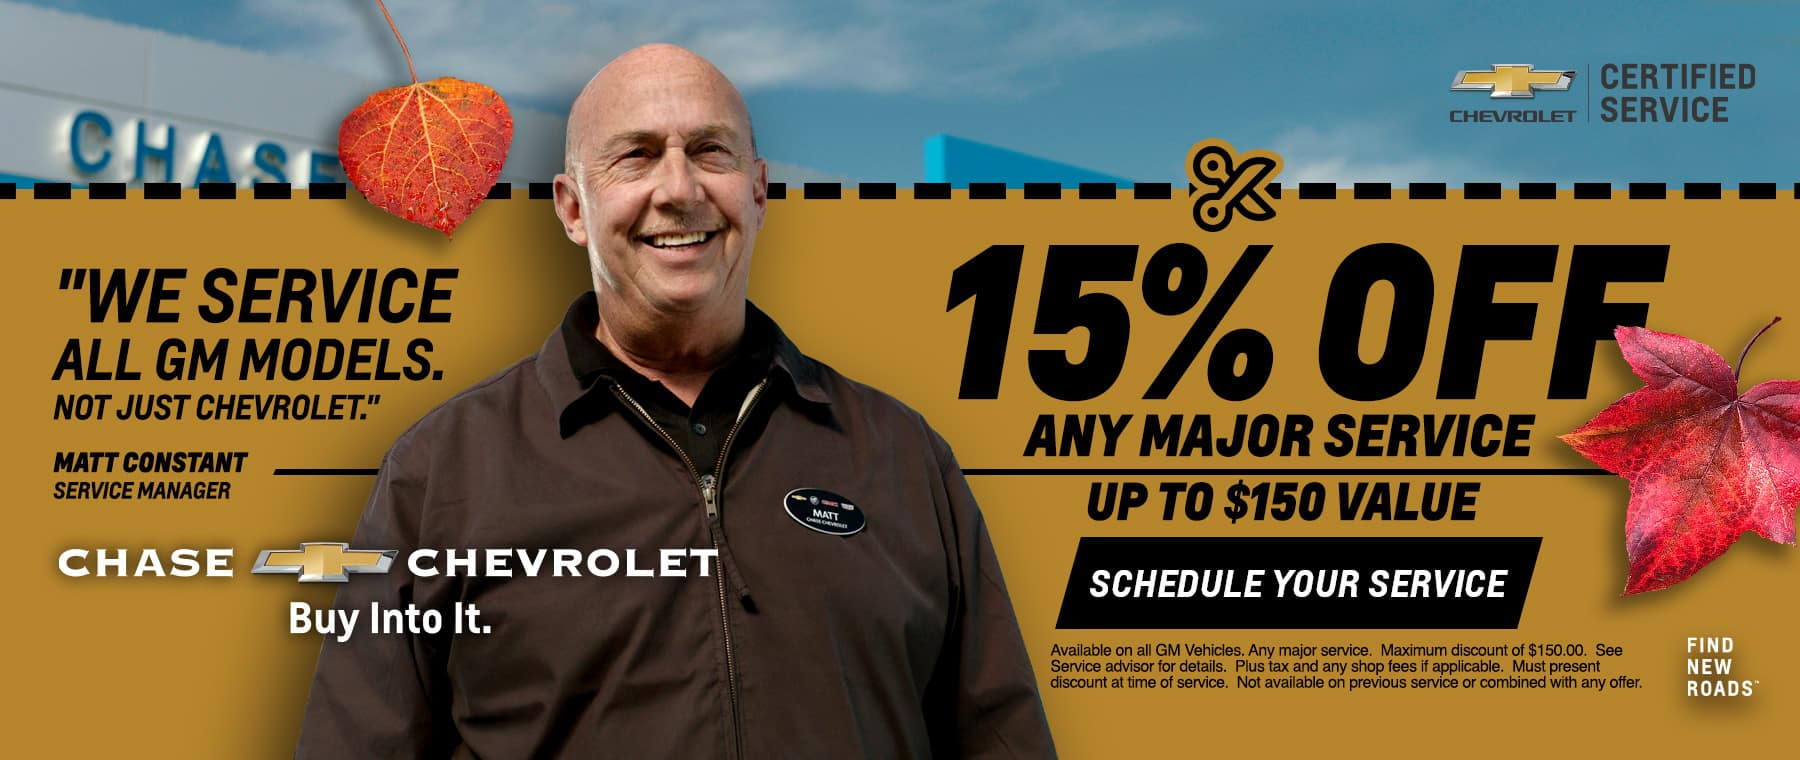 15% Off Any Major Service (Up To $150 Value) Schedule Your Service. Available on all GM Vehicles. Any major service. Maximum discount of $150.00. See Service advisor for details. Plus tax and any shop fees if applicable. Must present discount at time of service. Not available on previous service or combined with any offer.